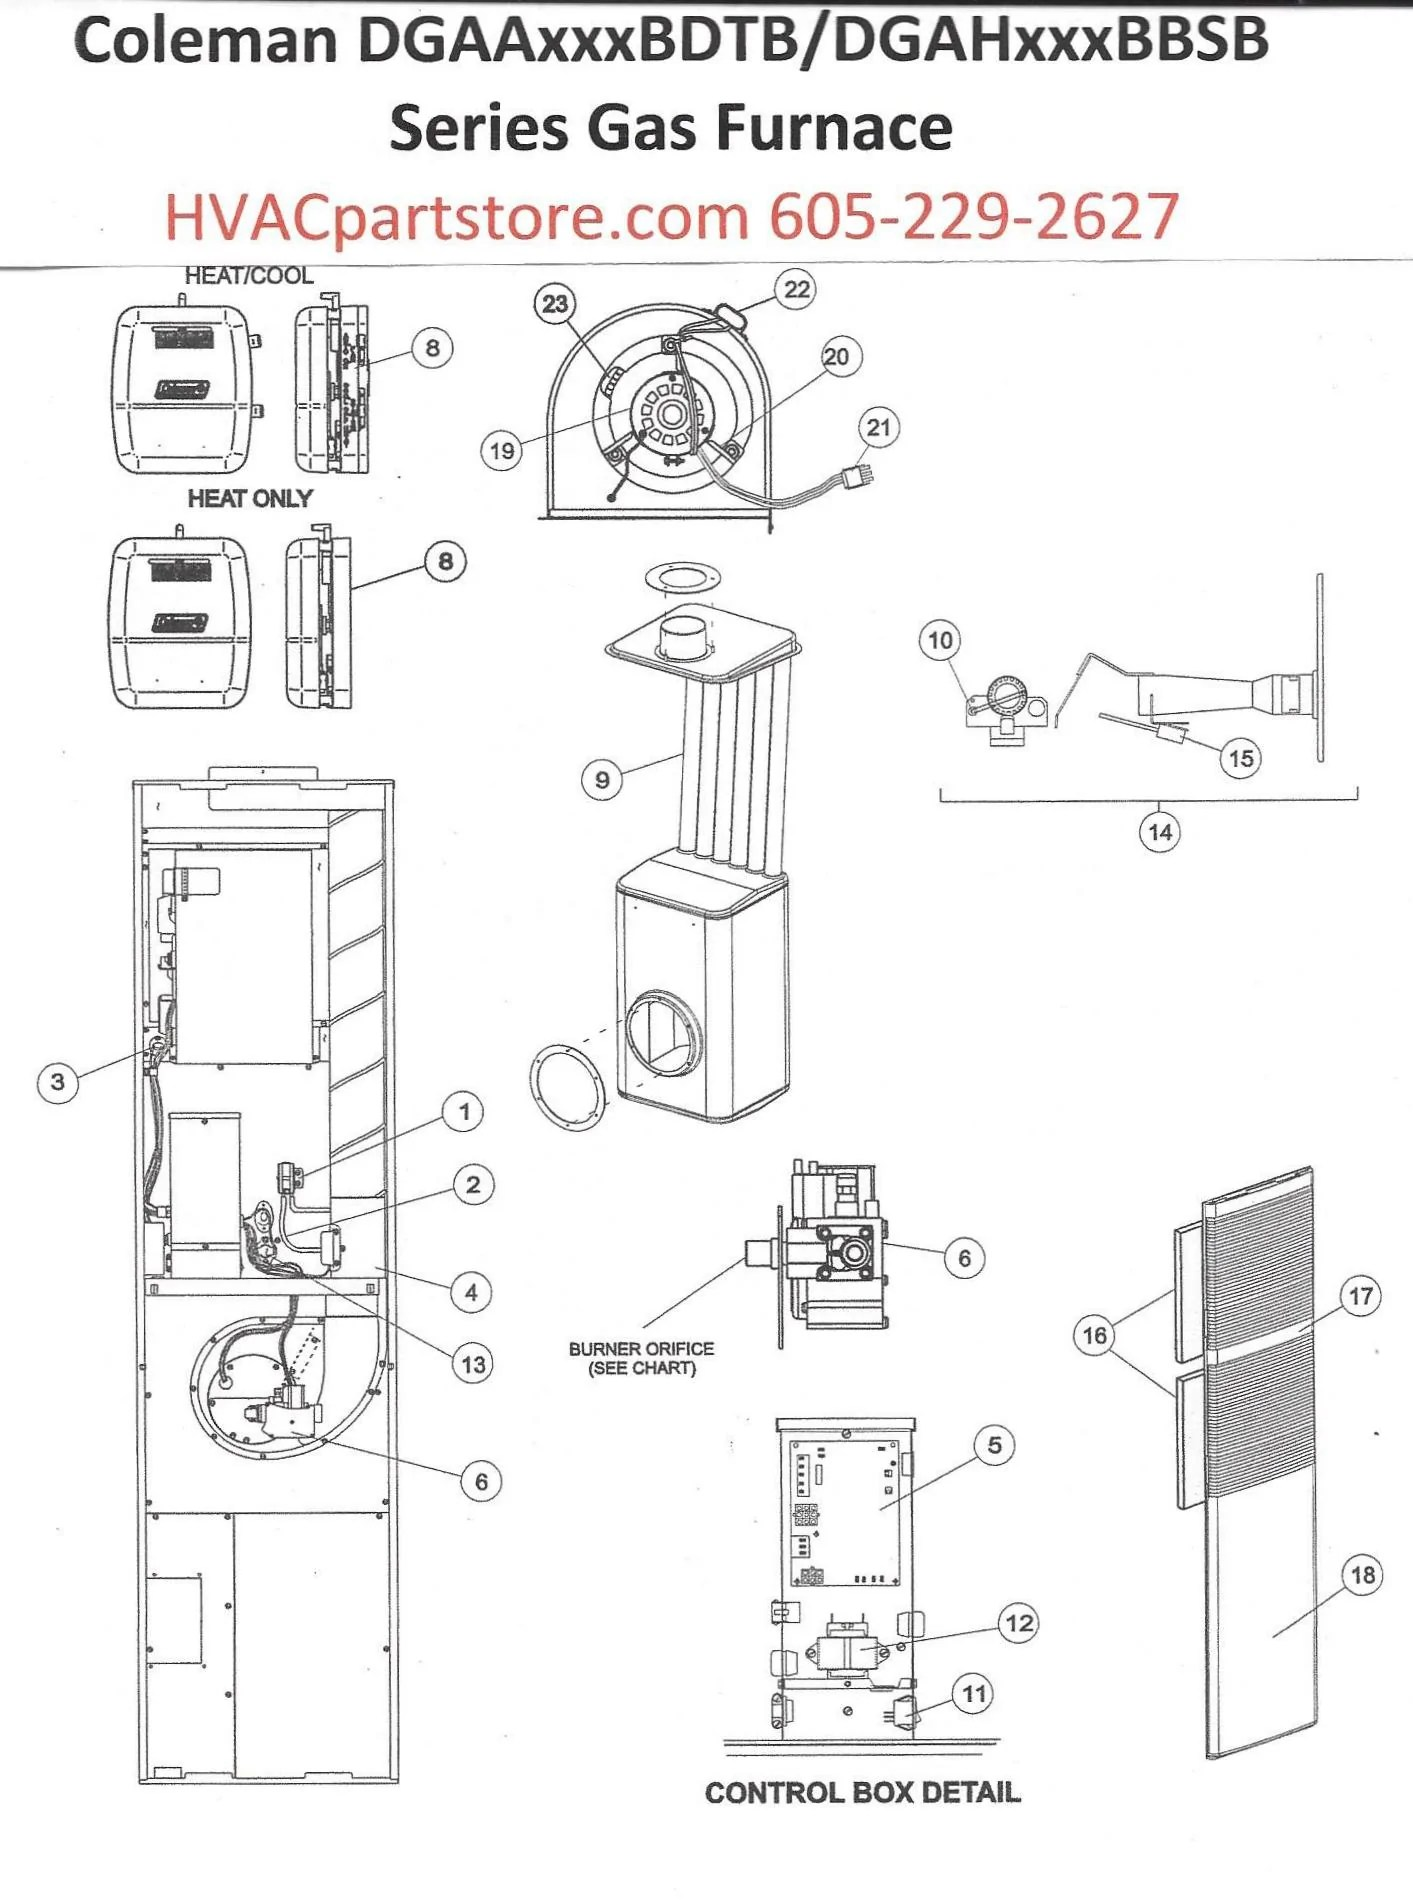 medium resolution of dgaa077bdtb coleman gas furnace parts hvacpartstore coleman evcon wiring diagram dgaa077bdtb